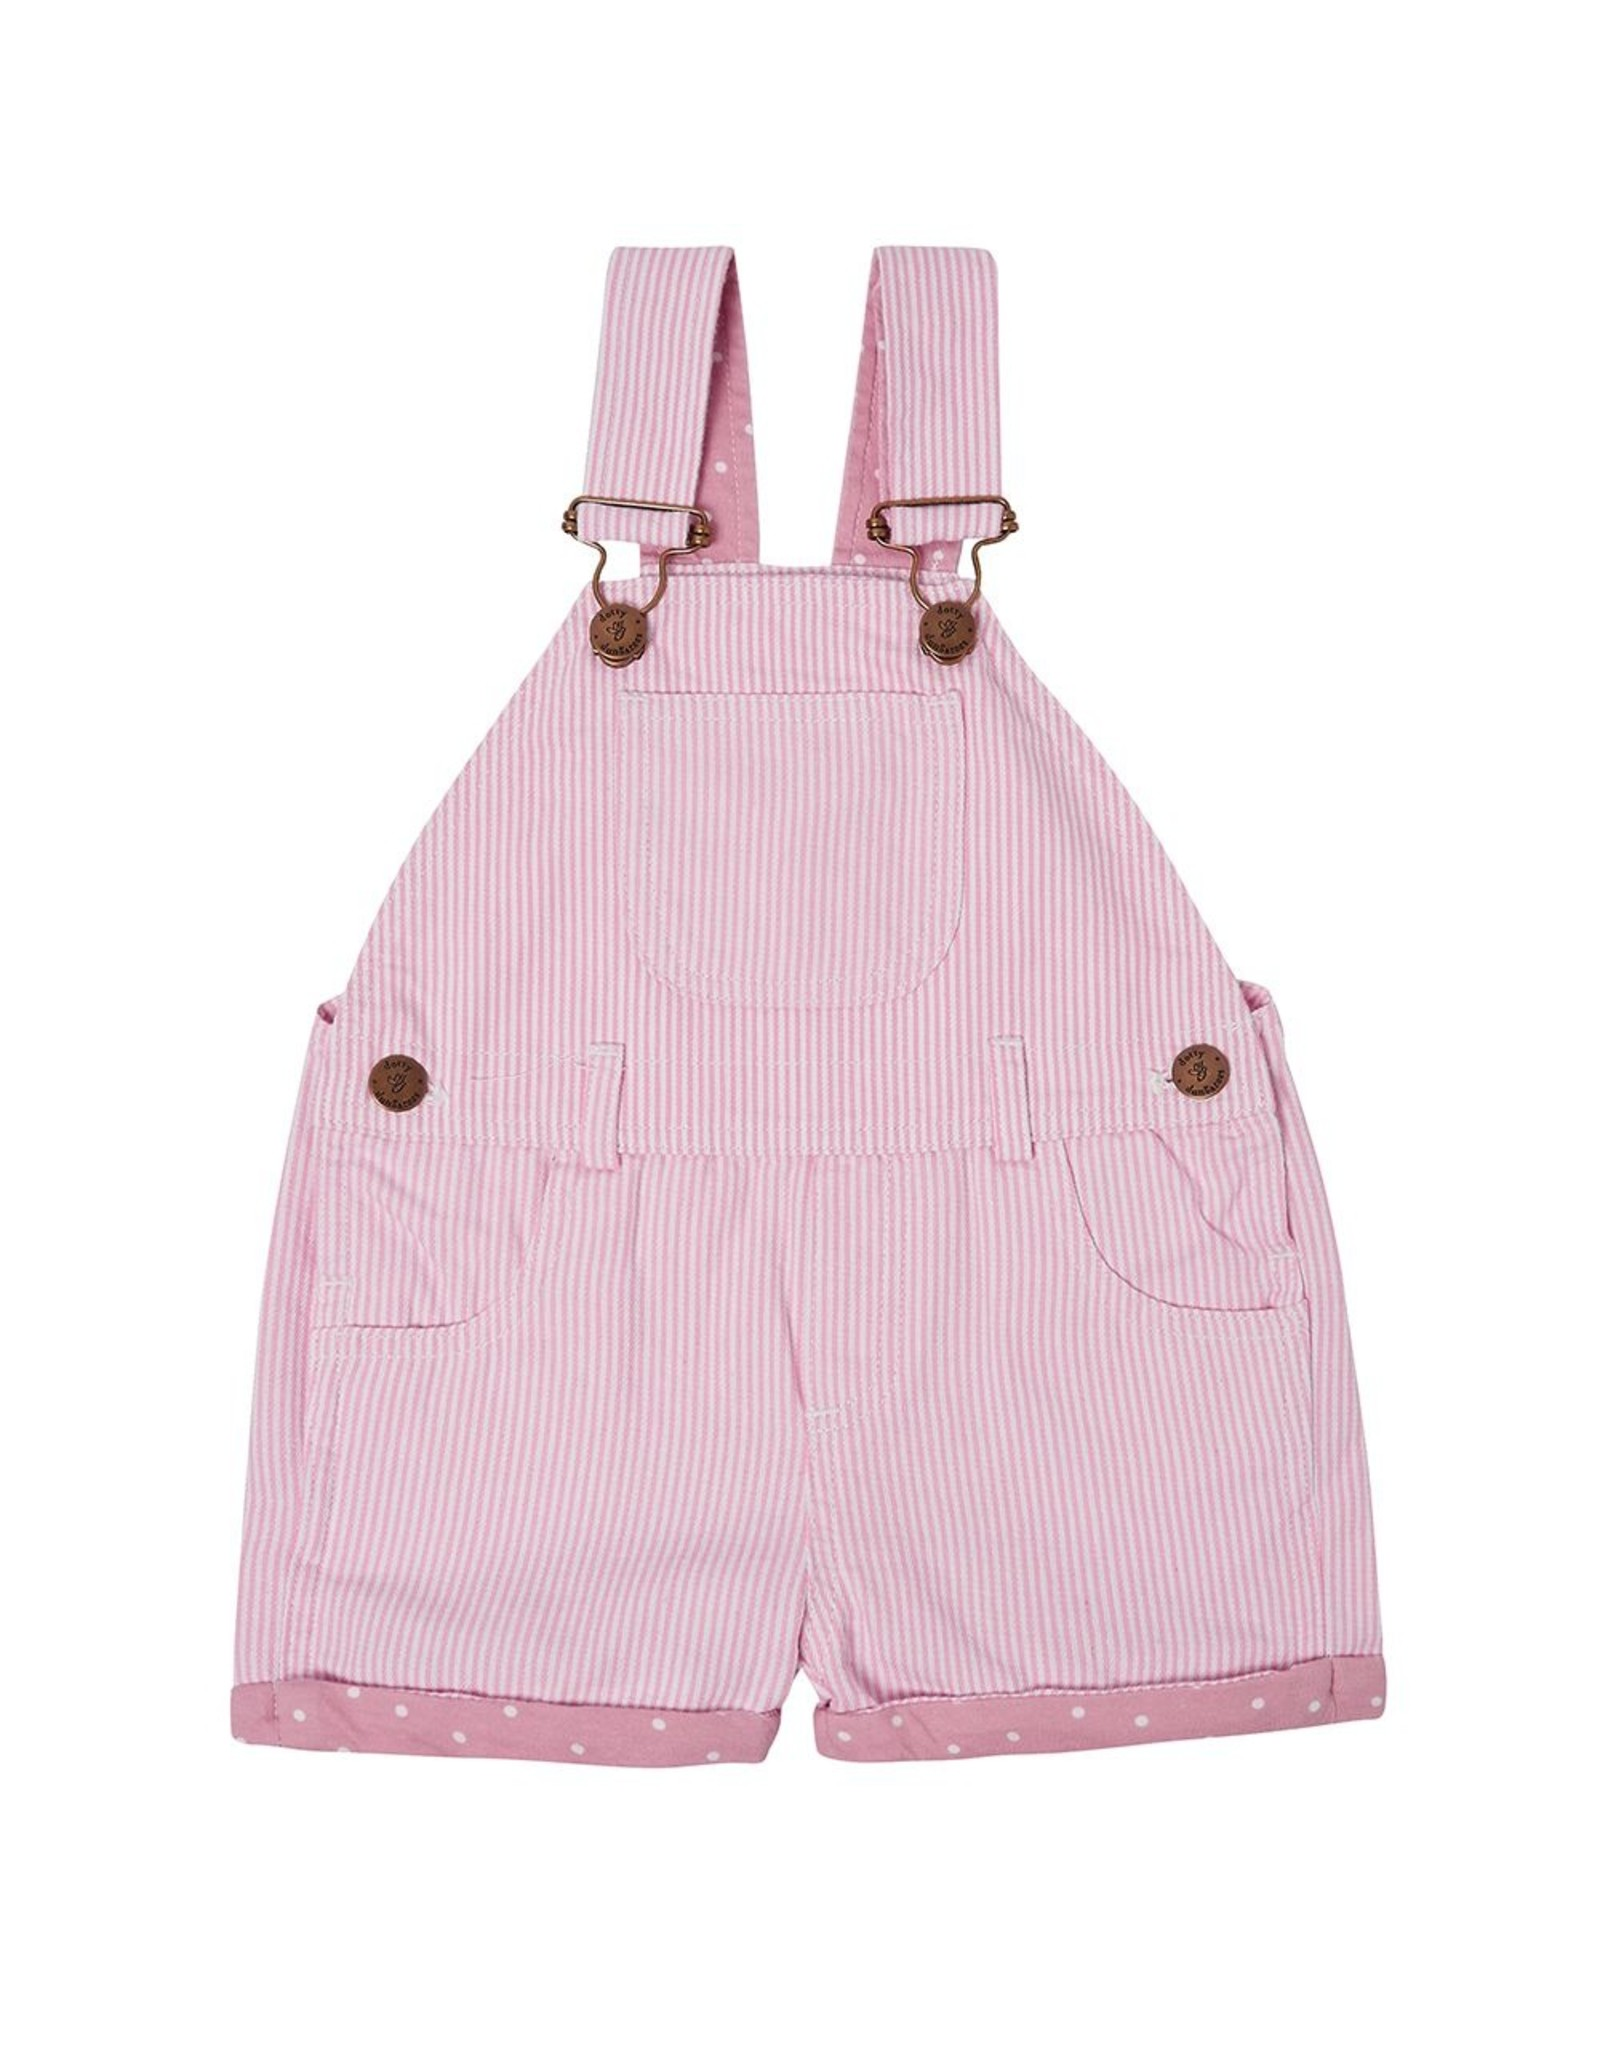 Dotty Dungarees Pink Striped Shorts- 4-5 Years